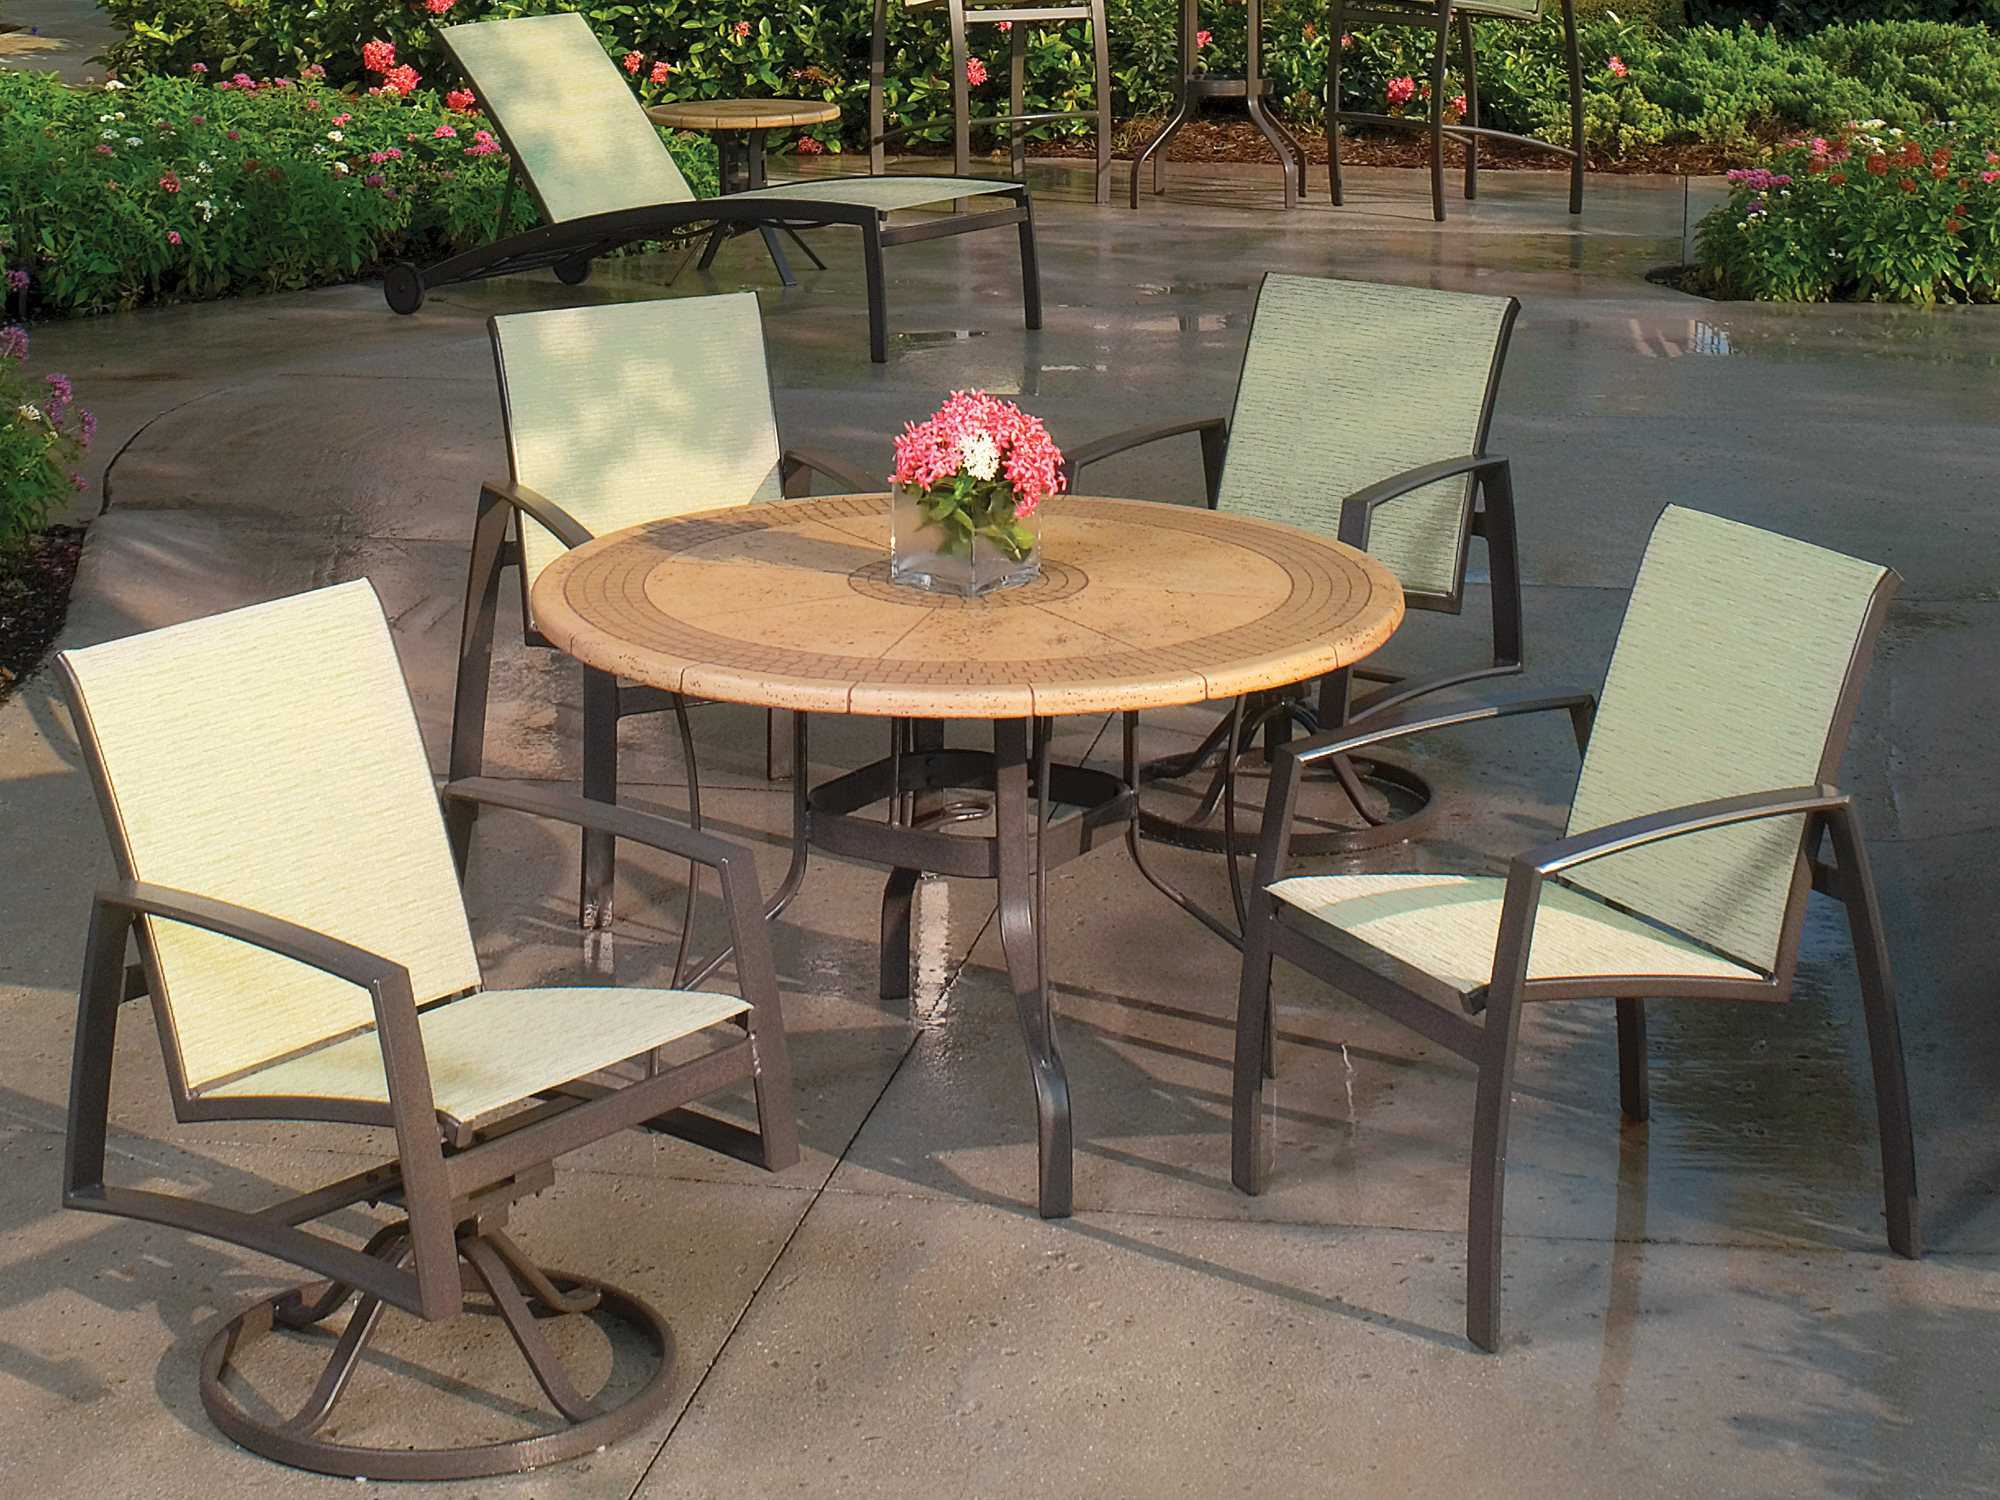 Suncoast Cortez Natural Stone 48 Round Dining Table TOPS 1611 E7T48D